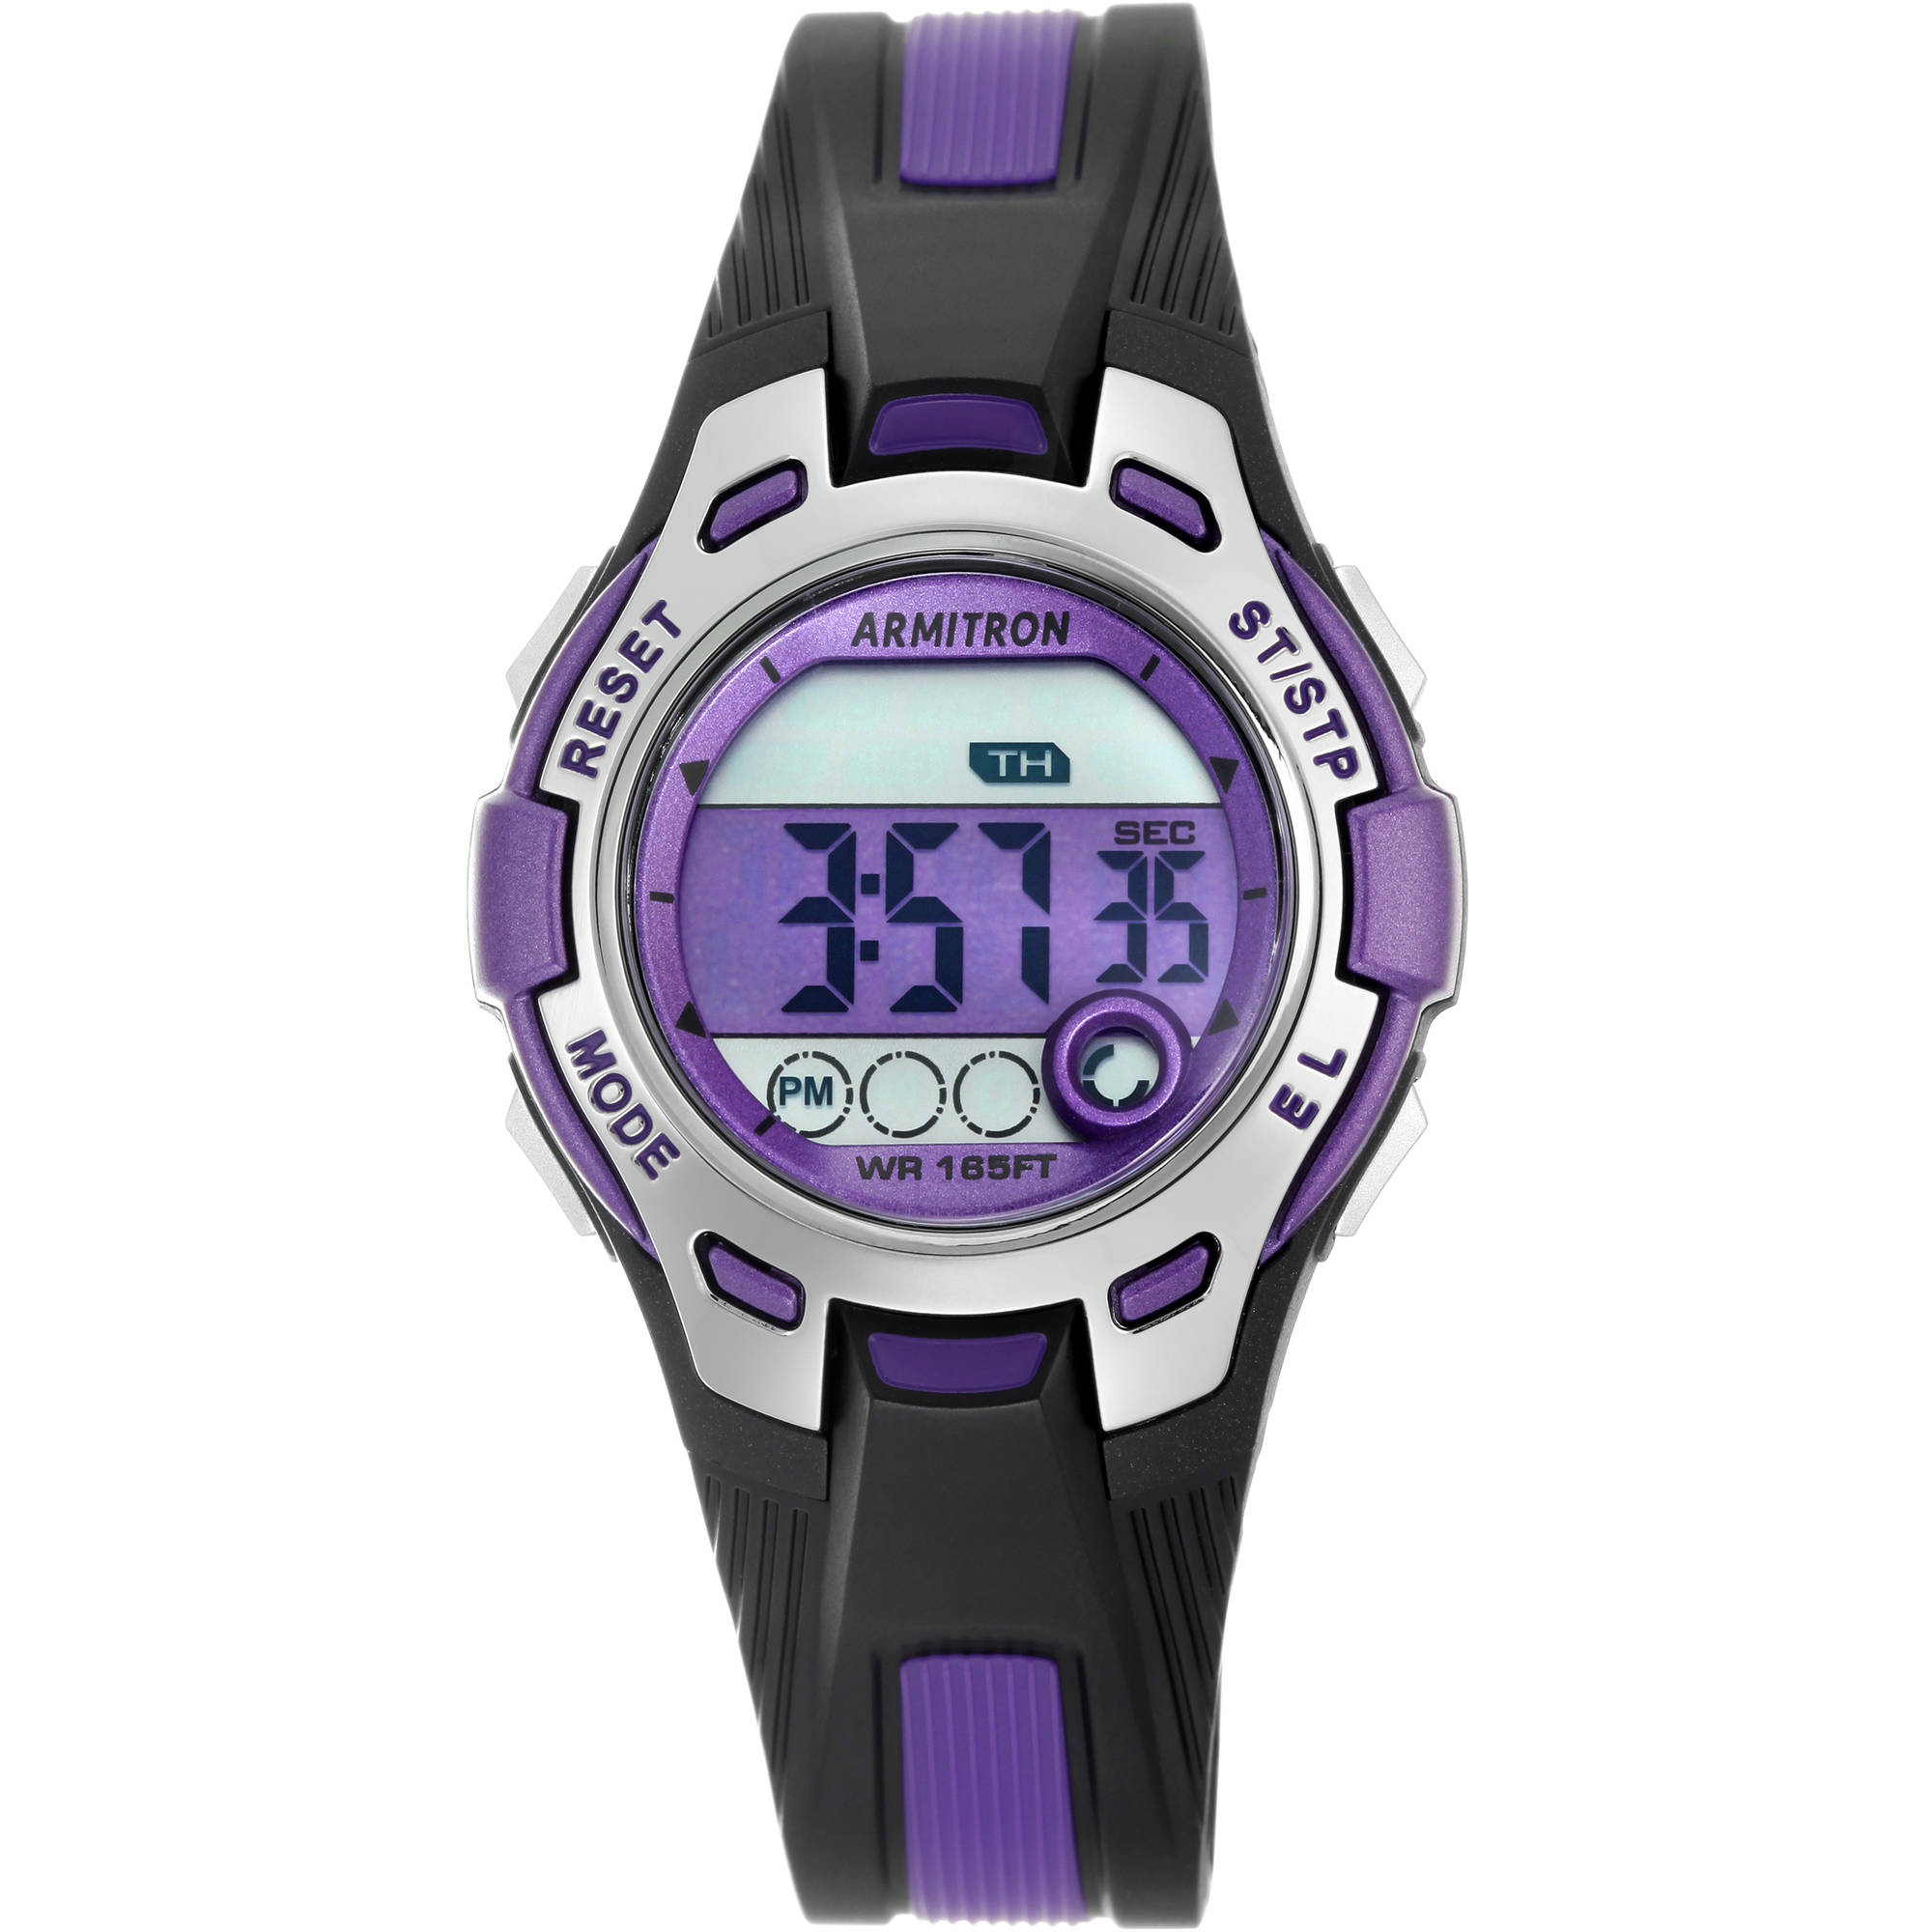 Armitron Women's Round Sport Watch, Purple